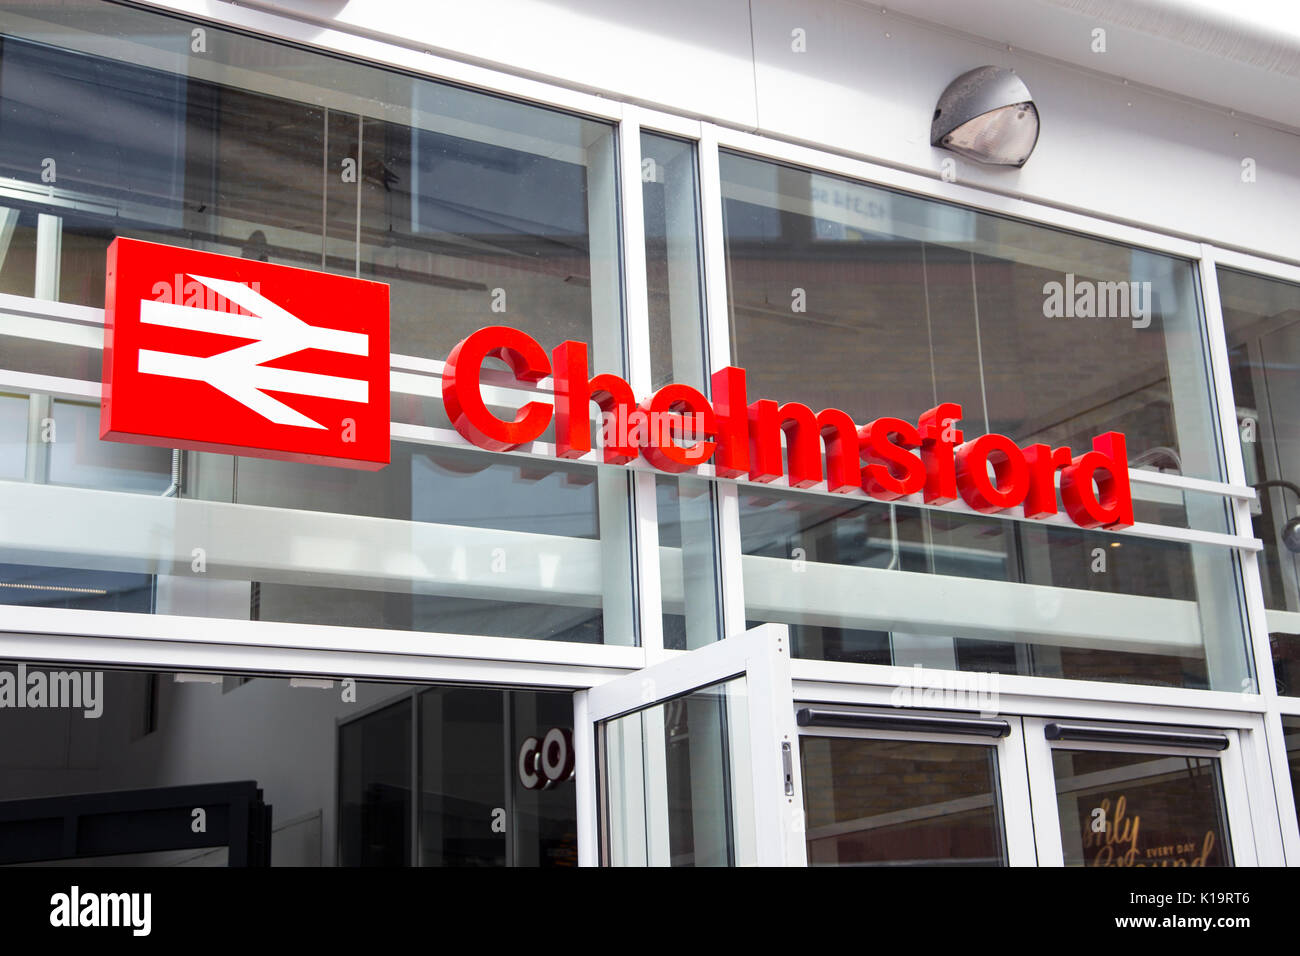 Chelmsford train station sign - Stock Image